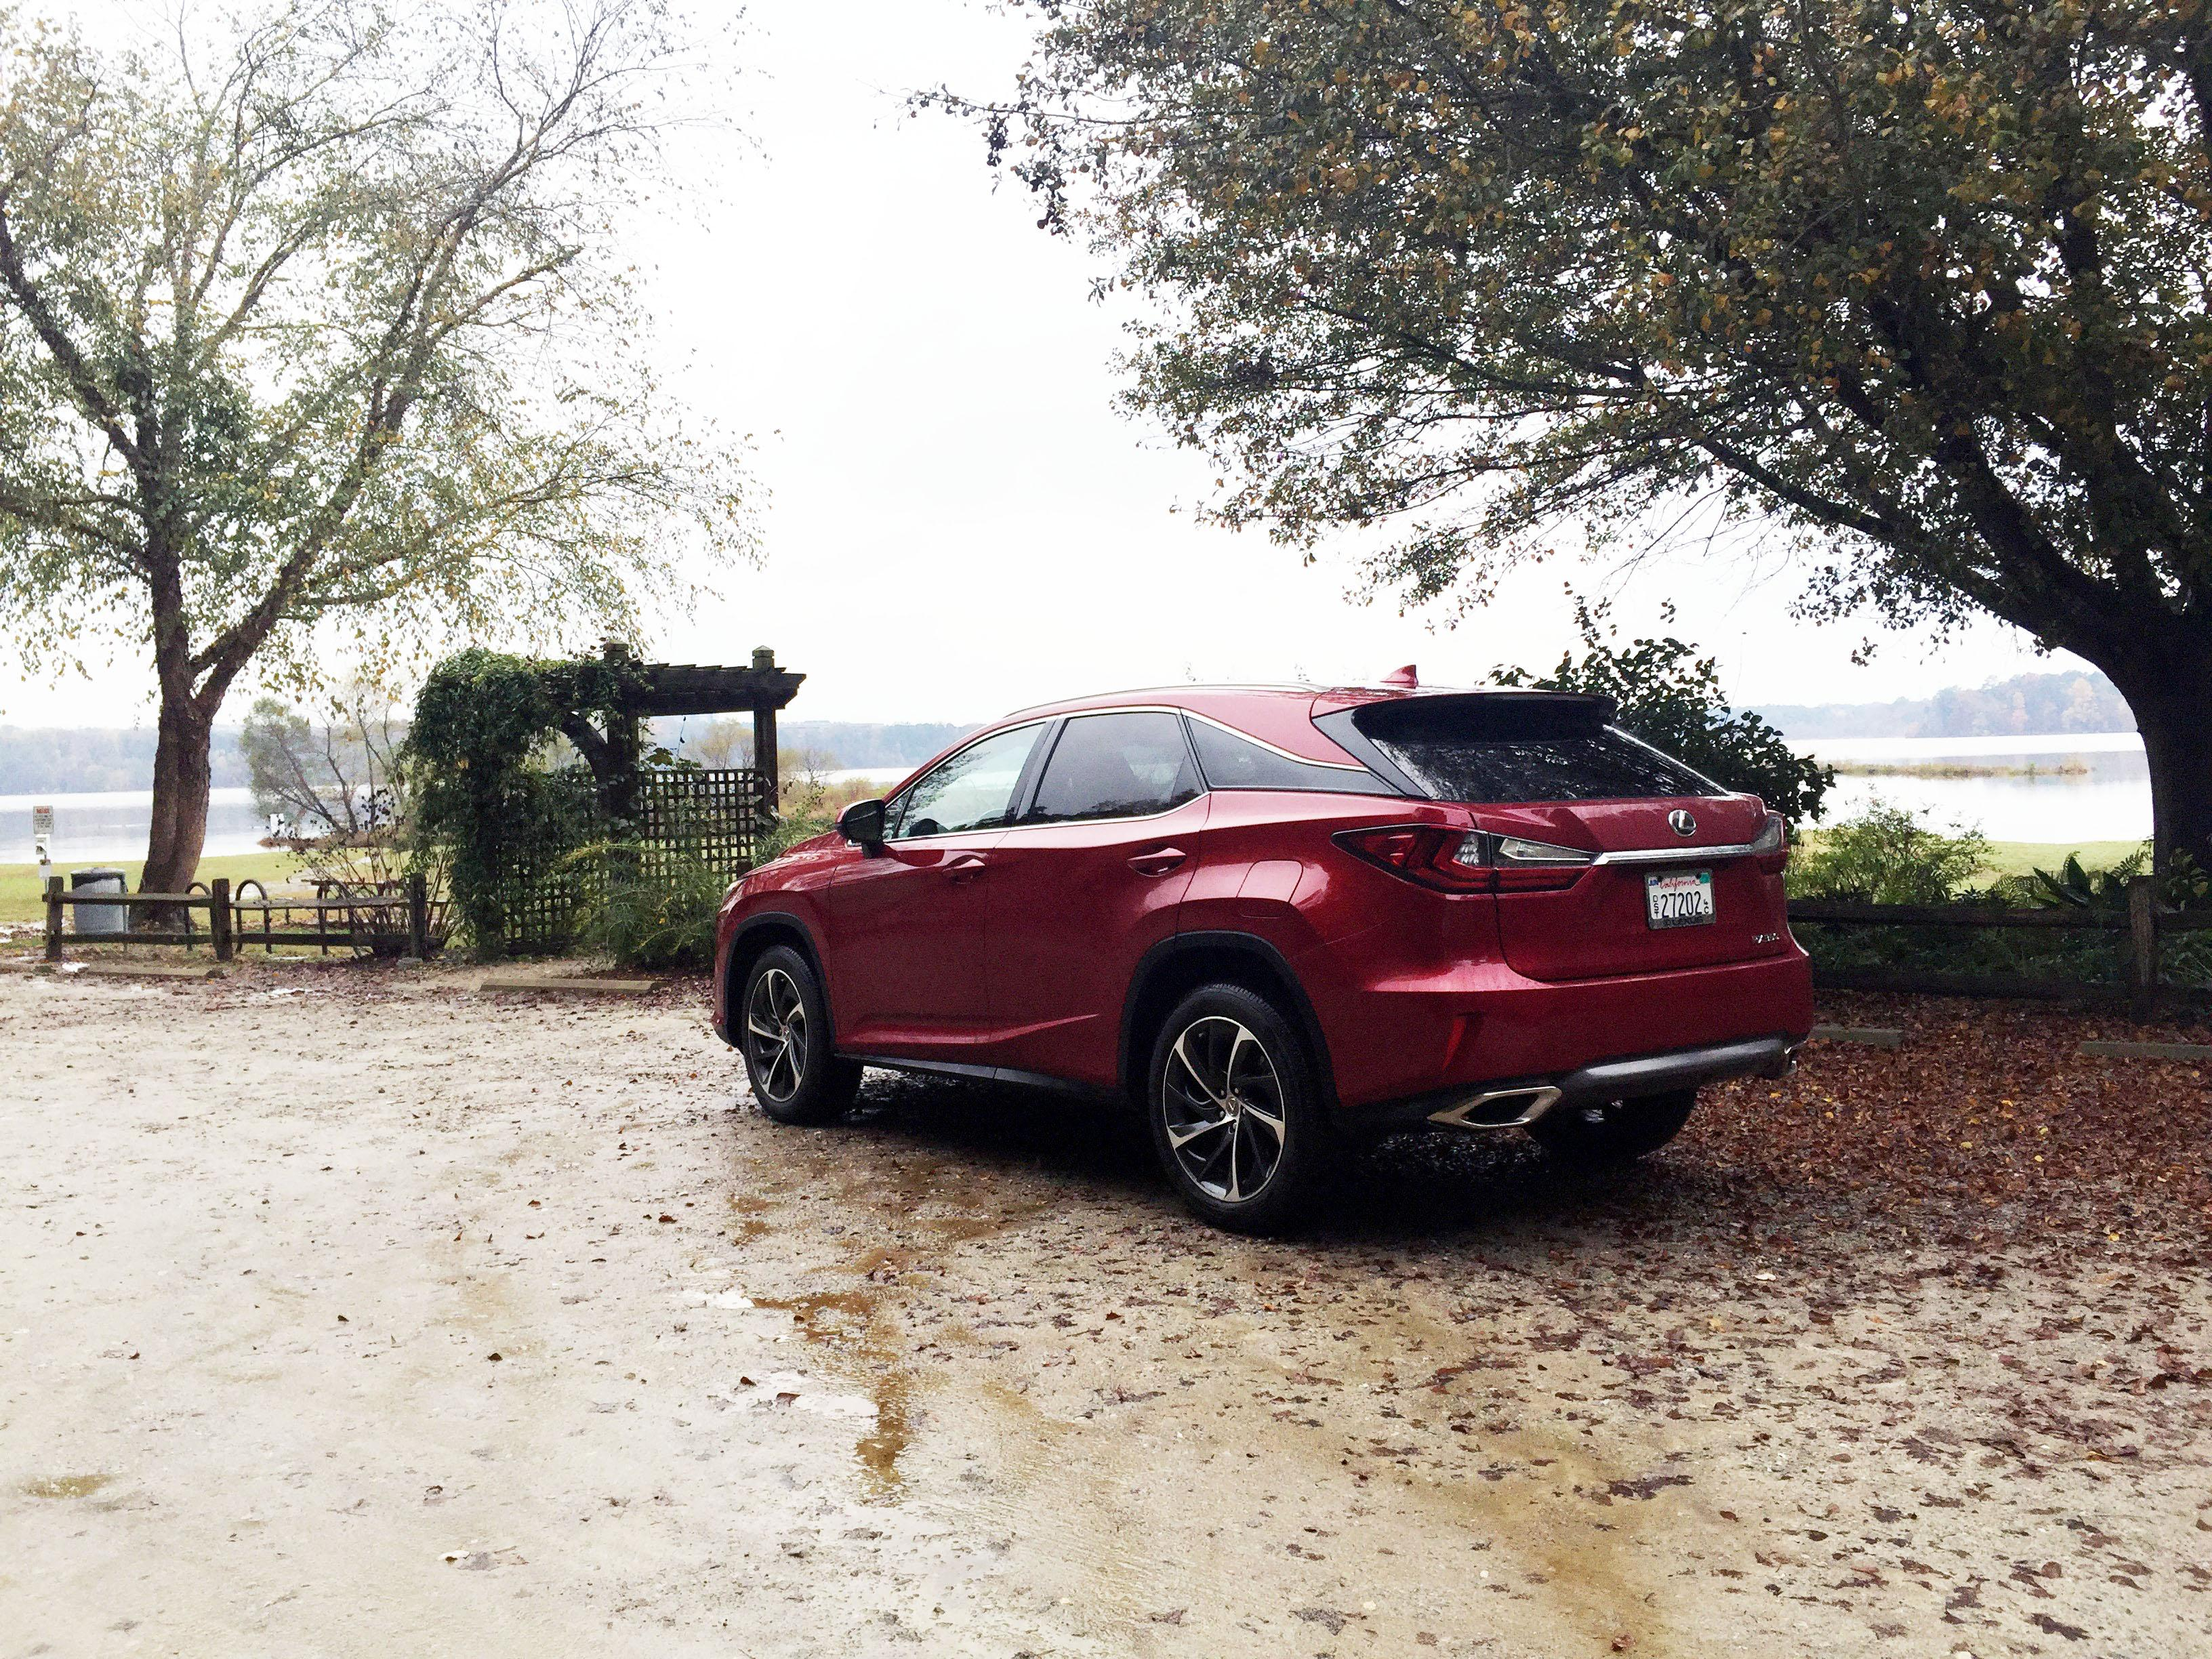 2016 Lexus RX rear quarter view